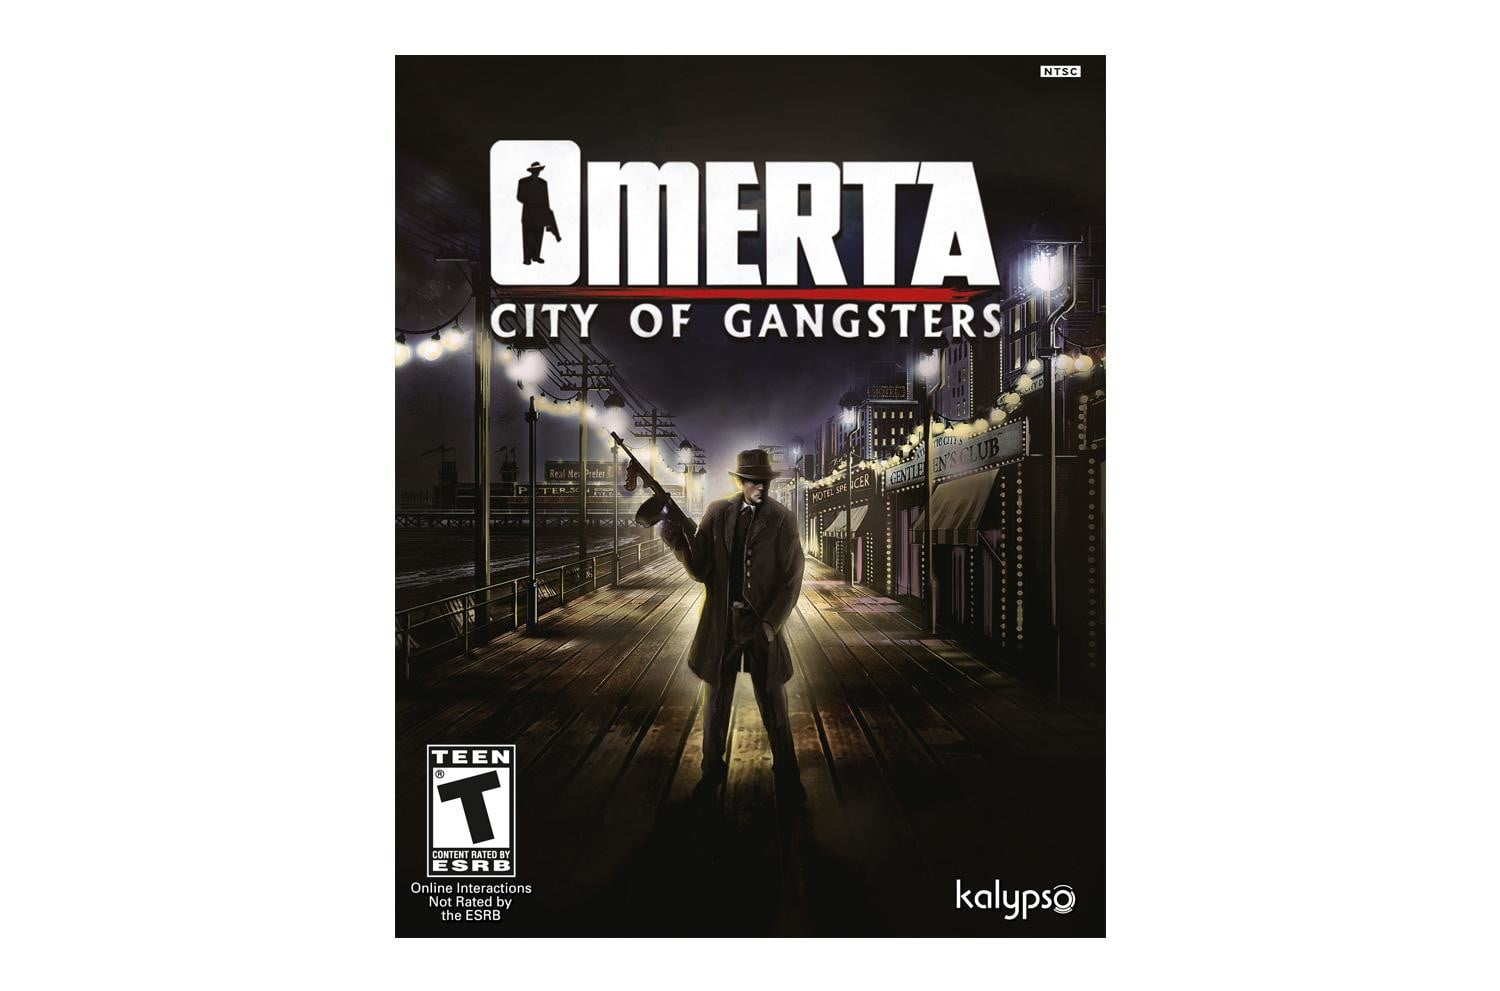 Omerta-City-of-Gangsters-cover-art